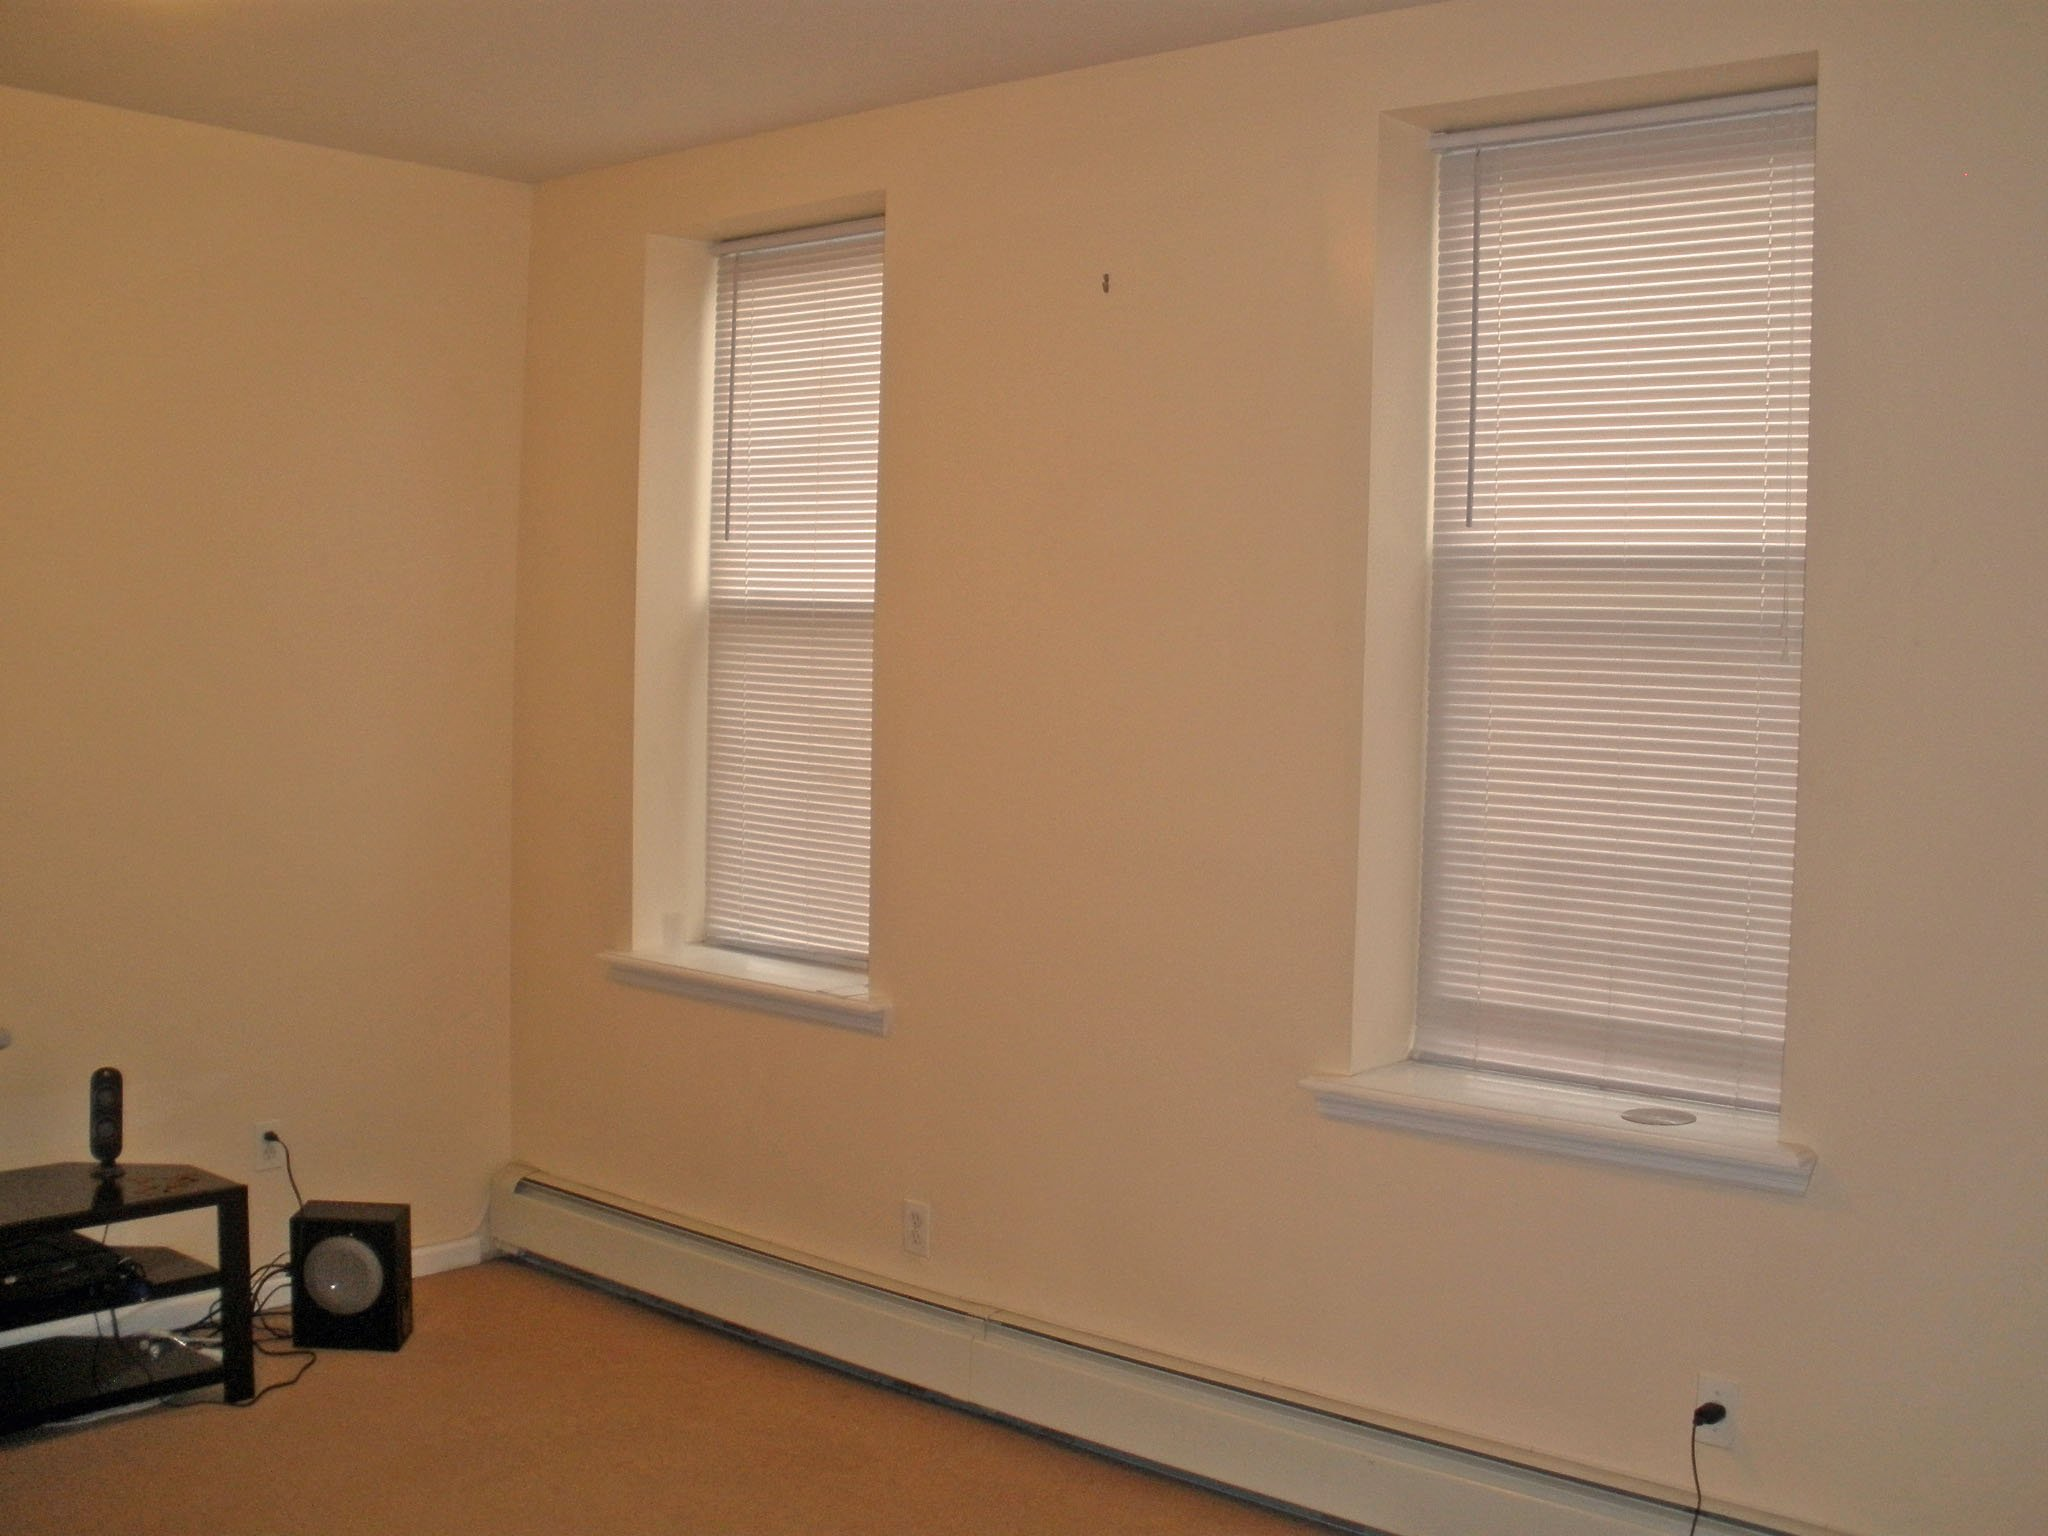 bed stuy 1 bedroom apartment for rent brooklyn crg3104